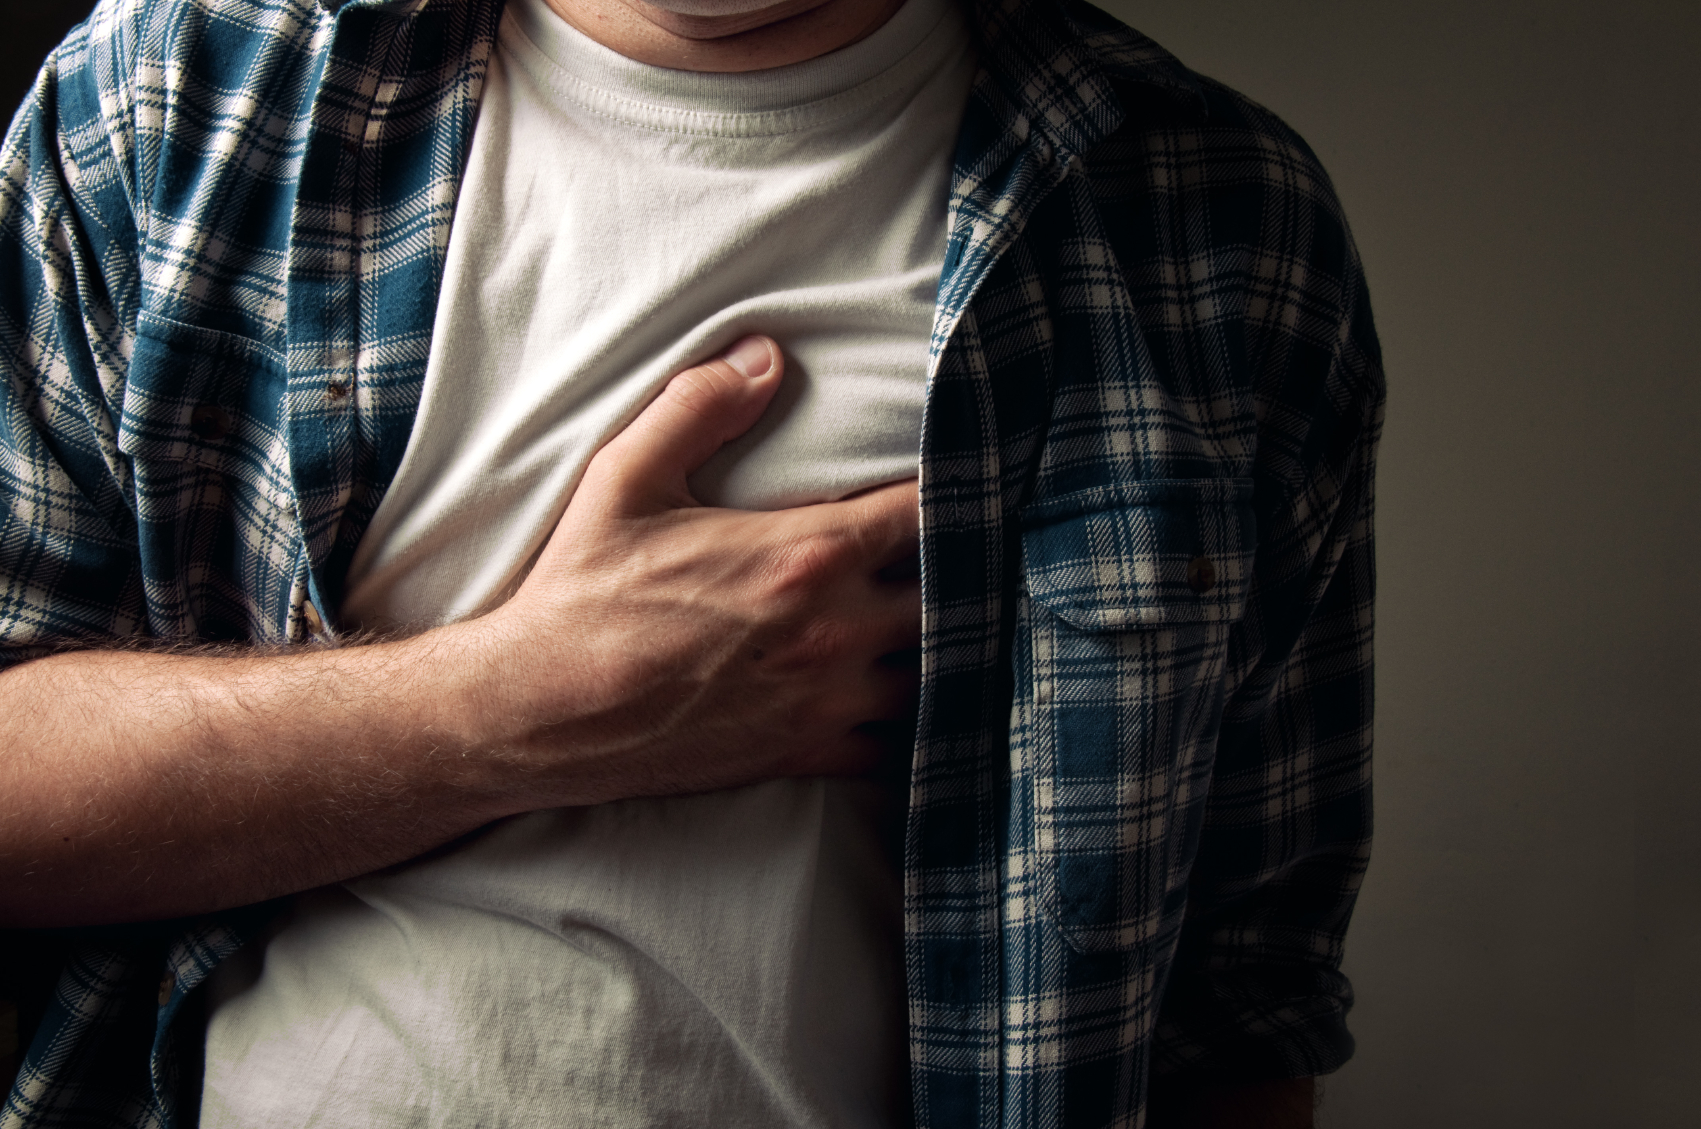 Cardiac arrest kills 420,000 Americans every year. Many of them died needlessly… They ignored the subtle signs that their heart would soon stop beating.